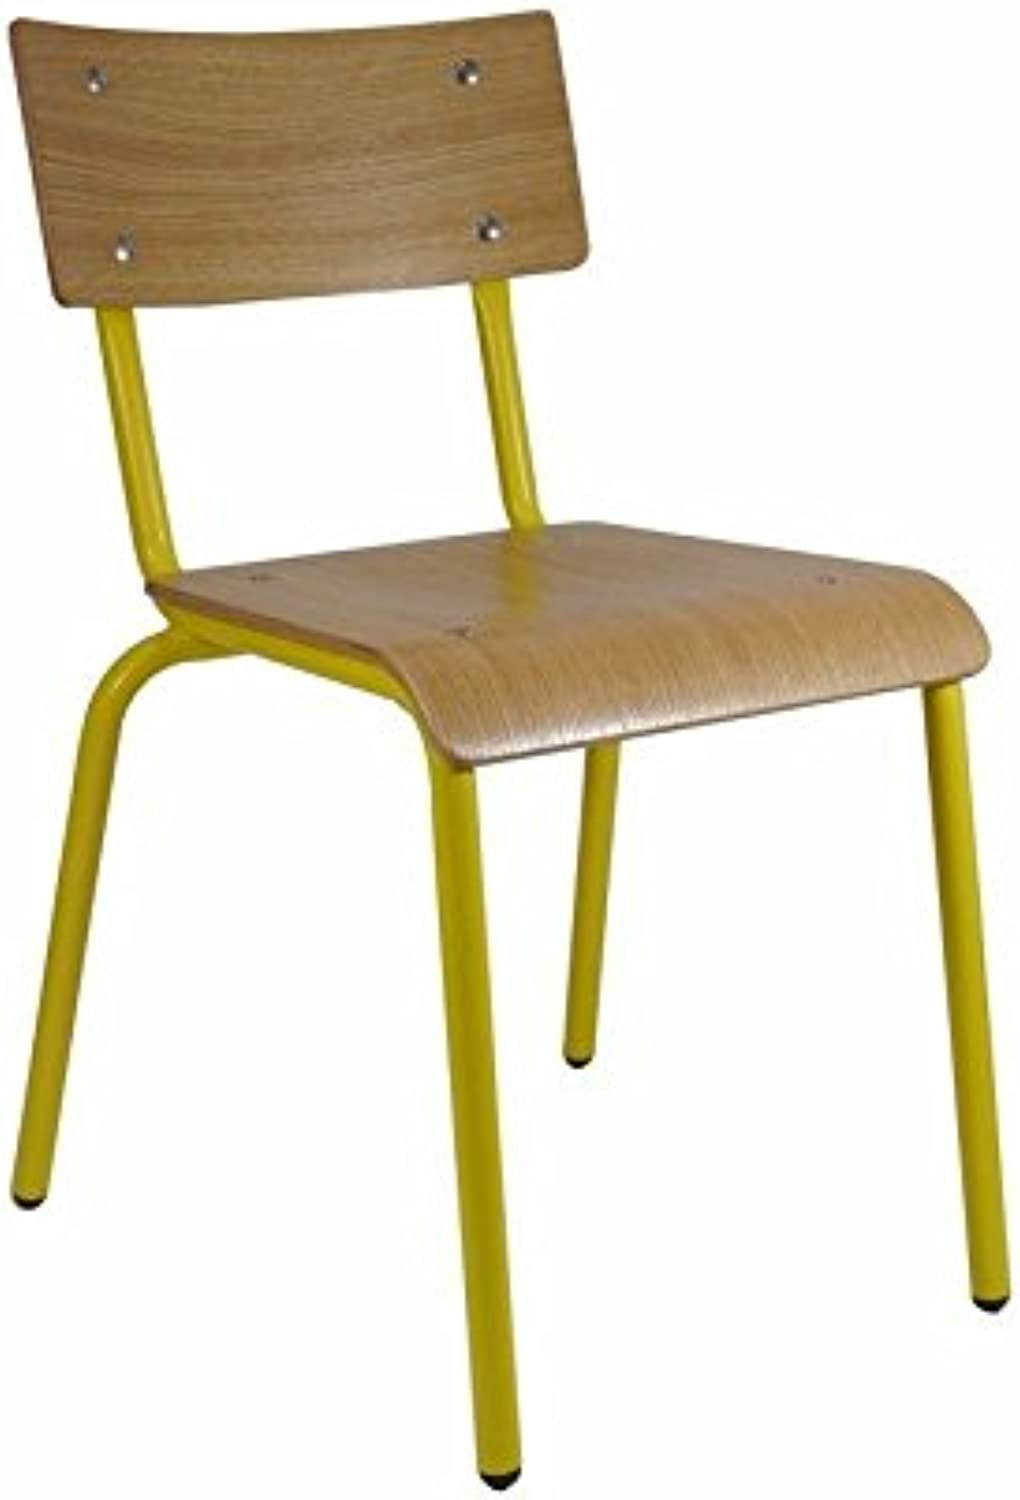 Skinner Cafe Restaurant Chair Retro Chairs Oak Duck Yolk Yellow